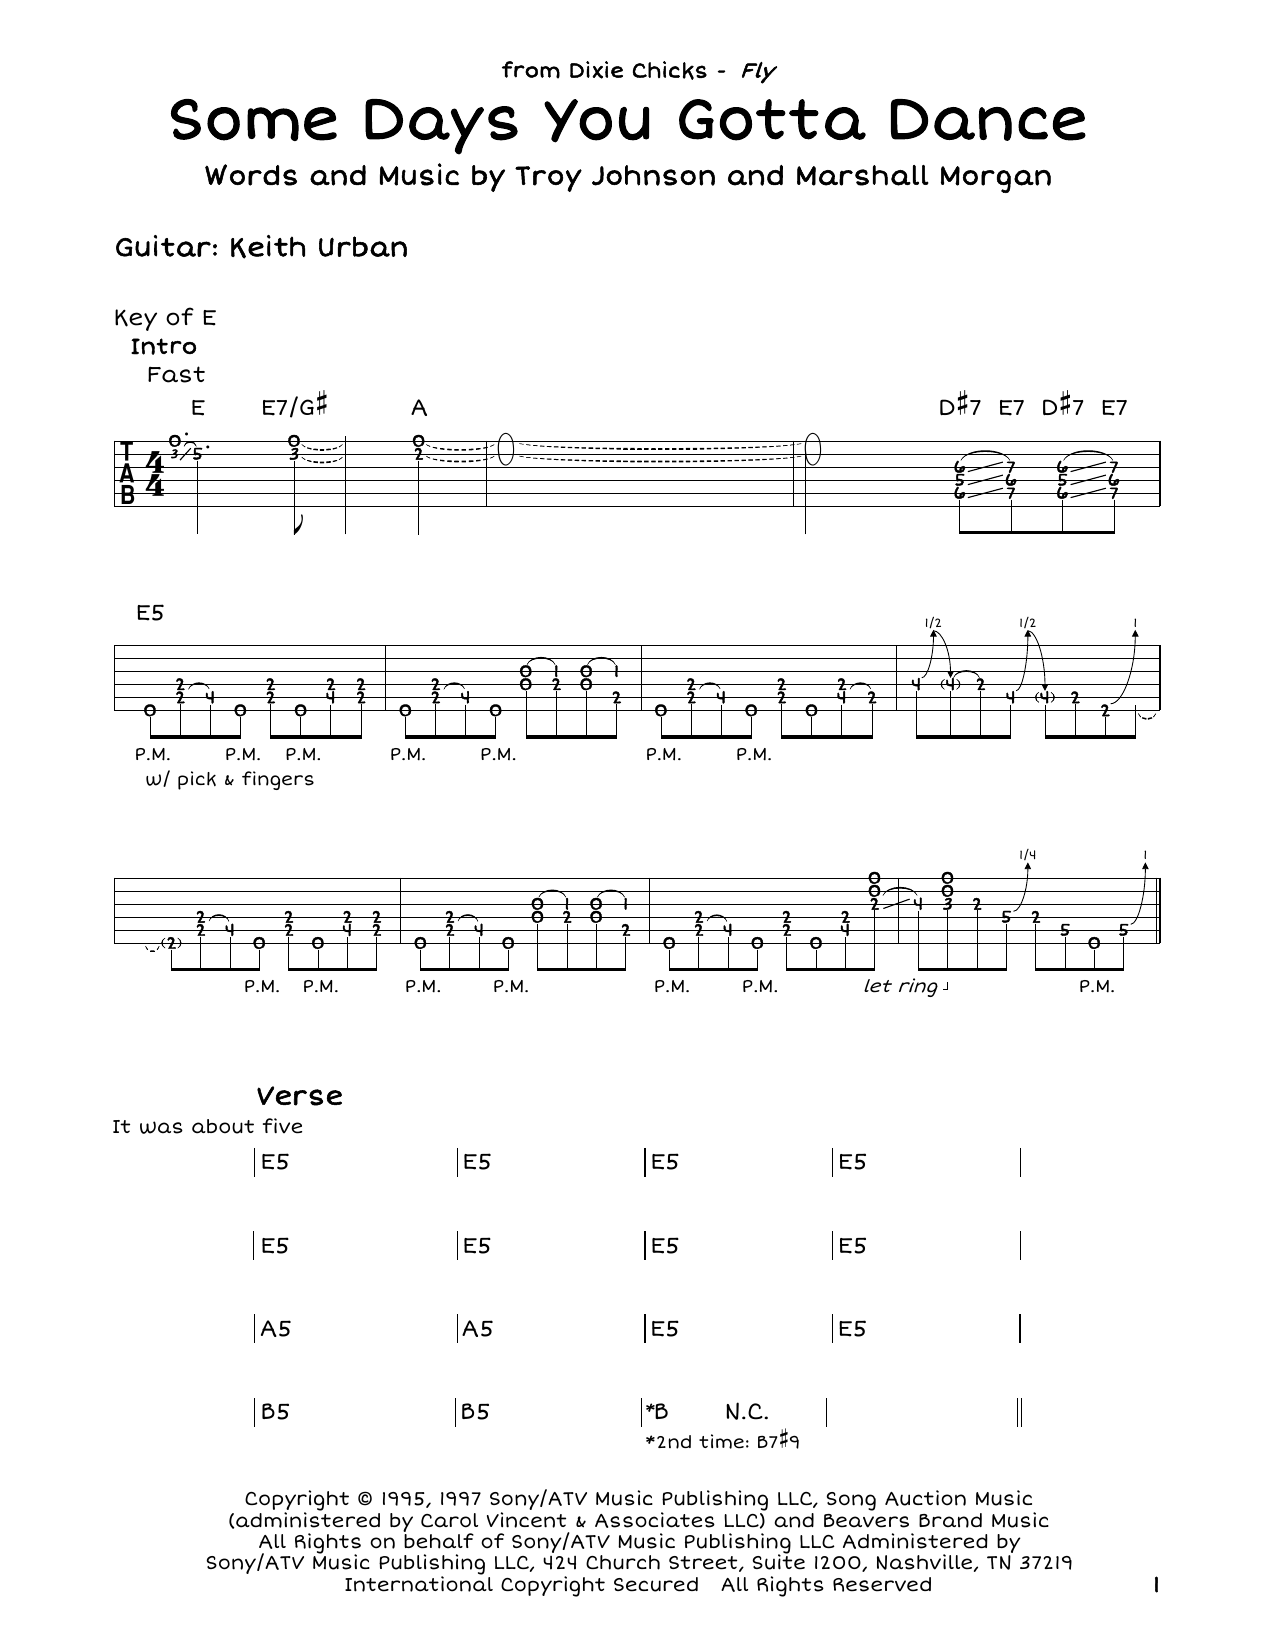 Dixie Chicks Some Days You Gotta Dance Sheet Music Notes Chords